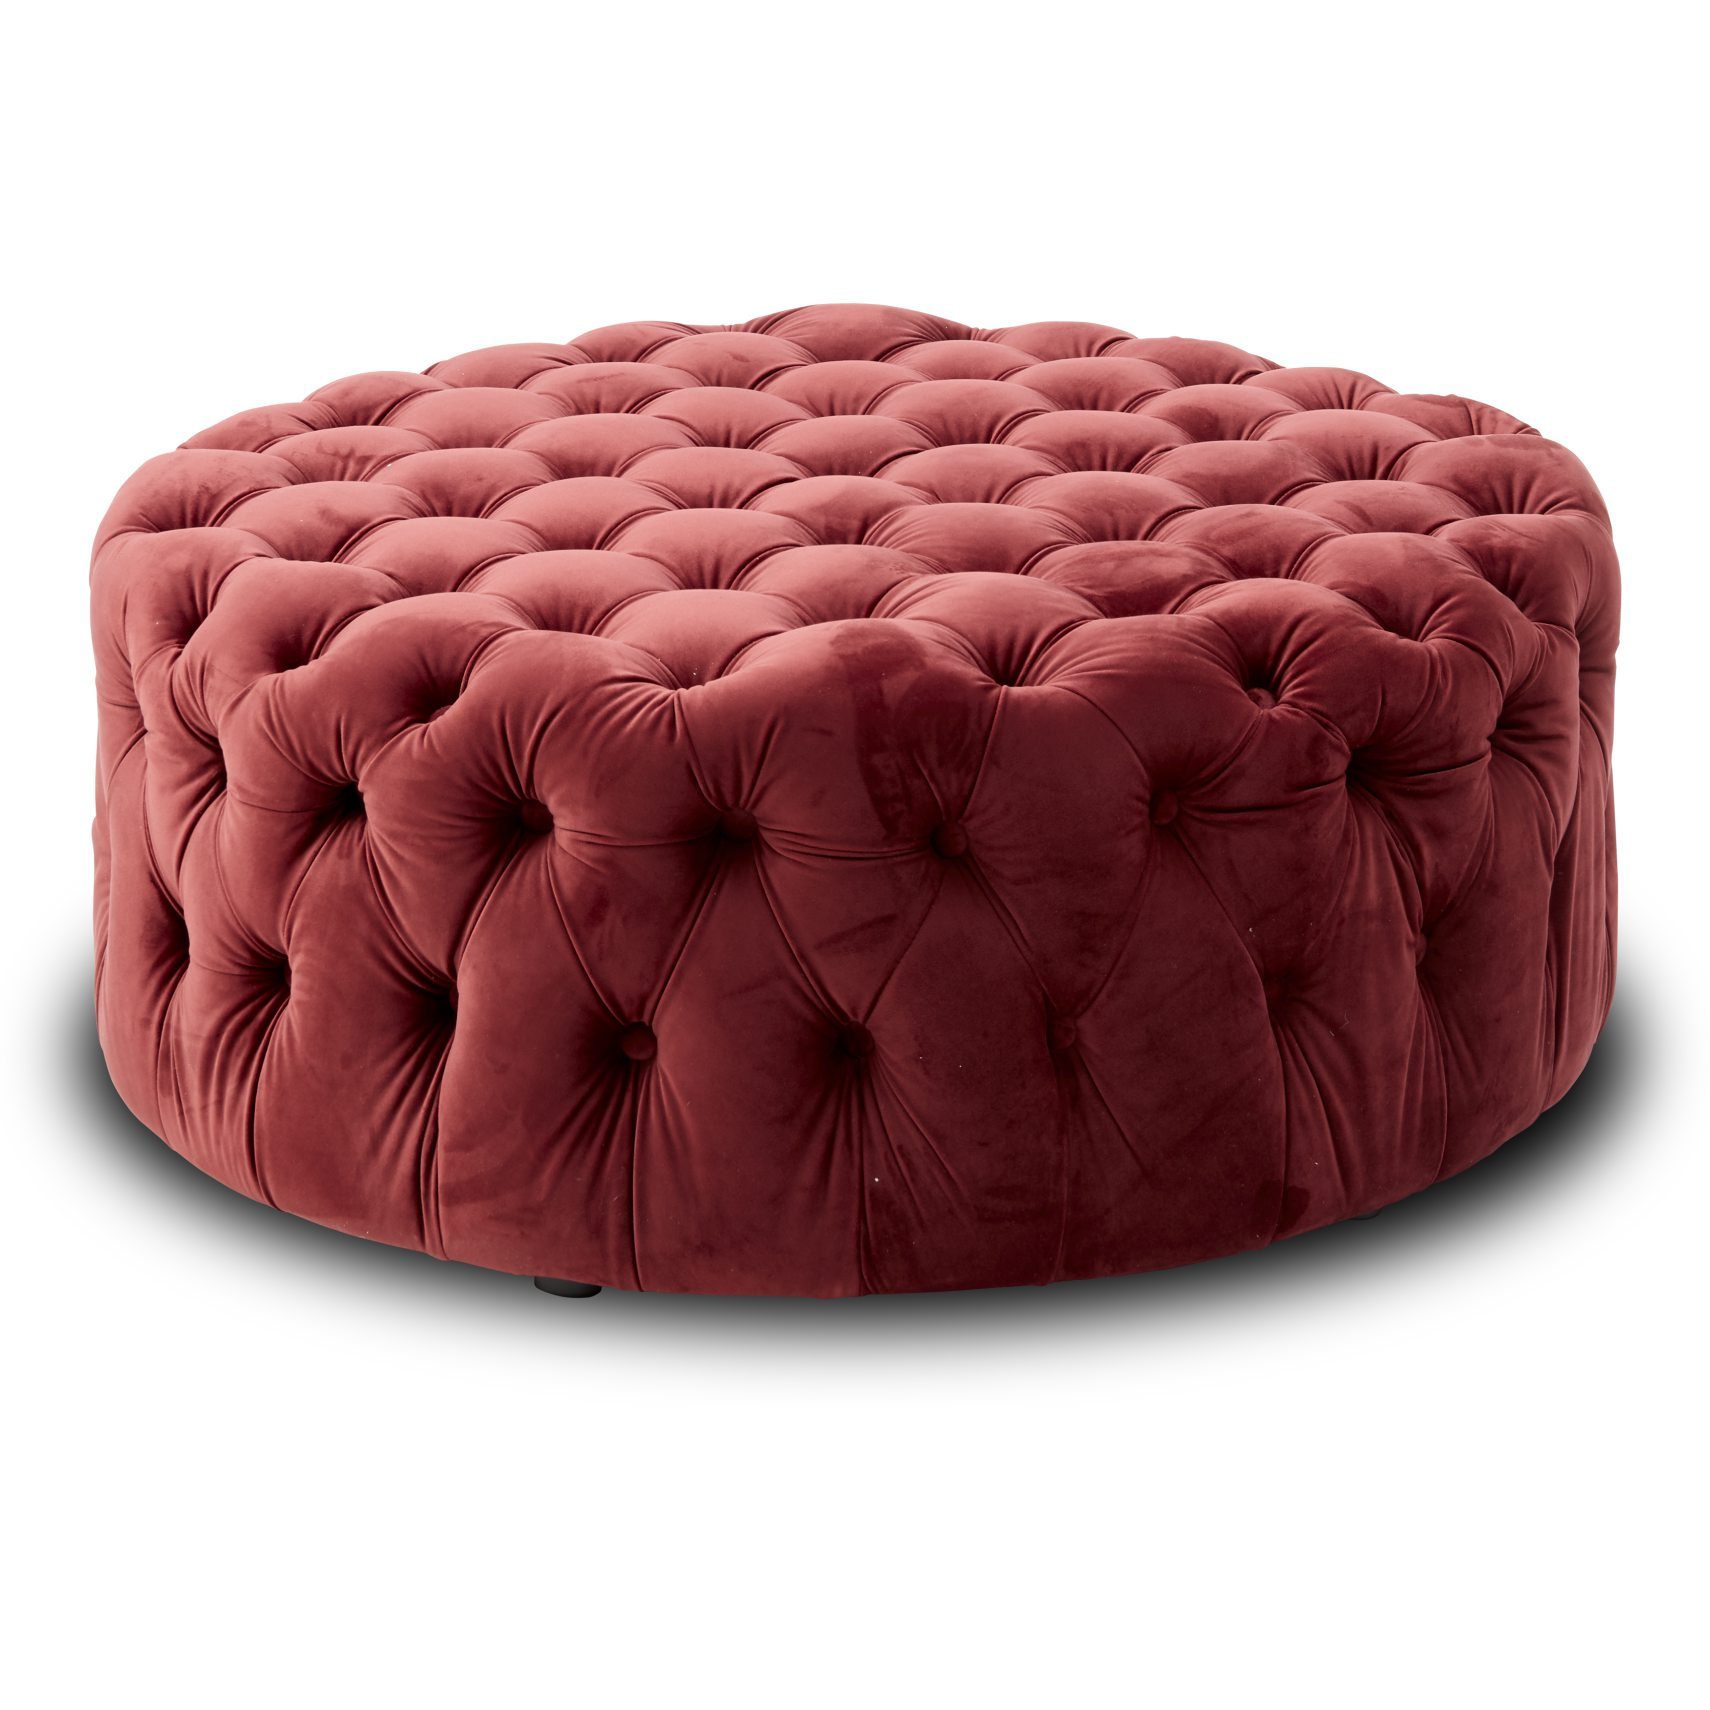 Cindy Sofa puf - Barn red 2028-51 velour stof